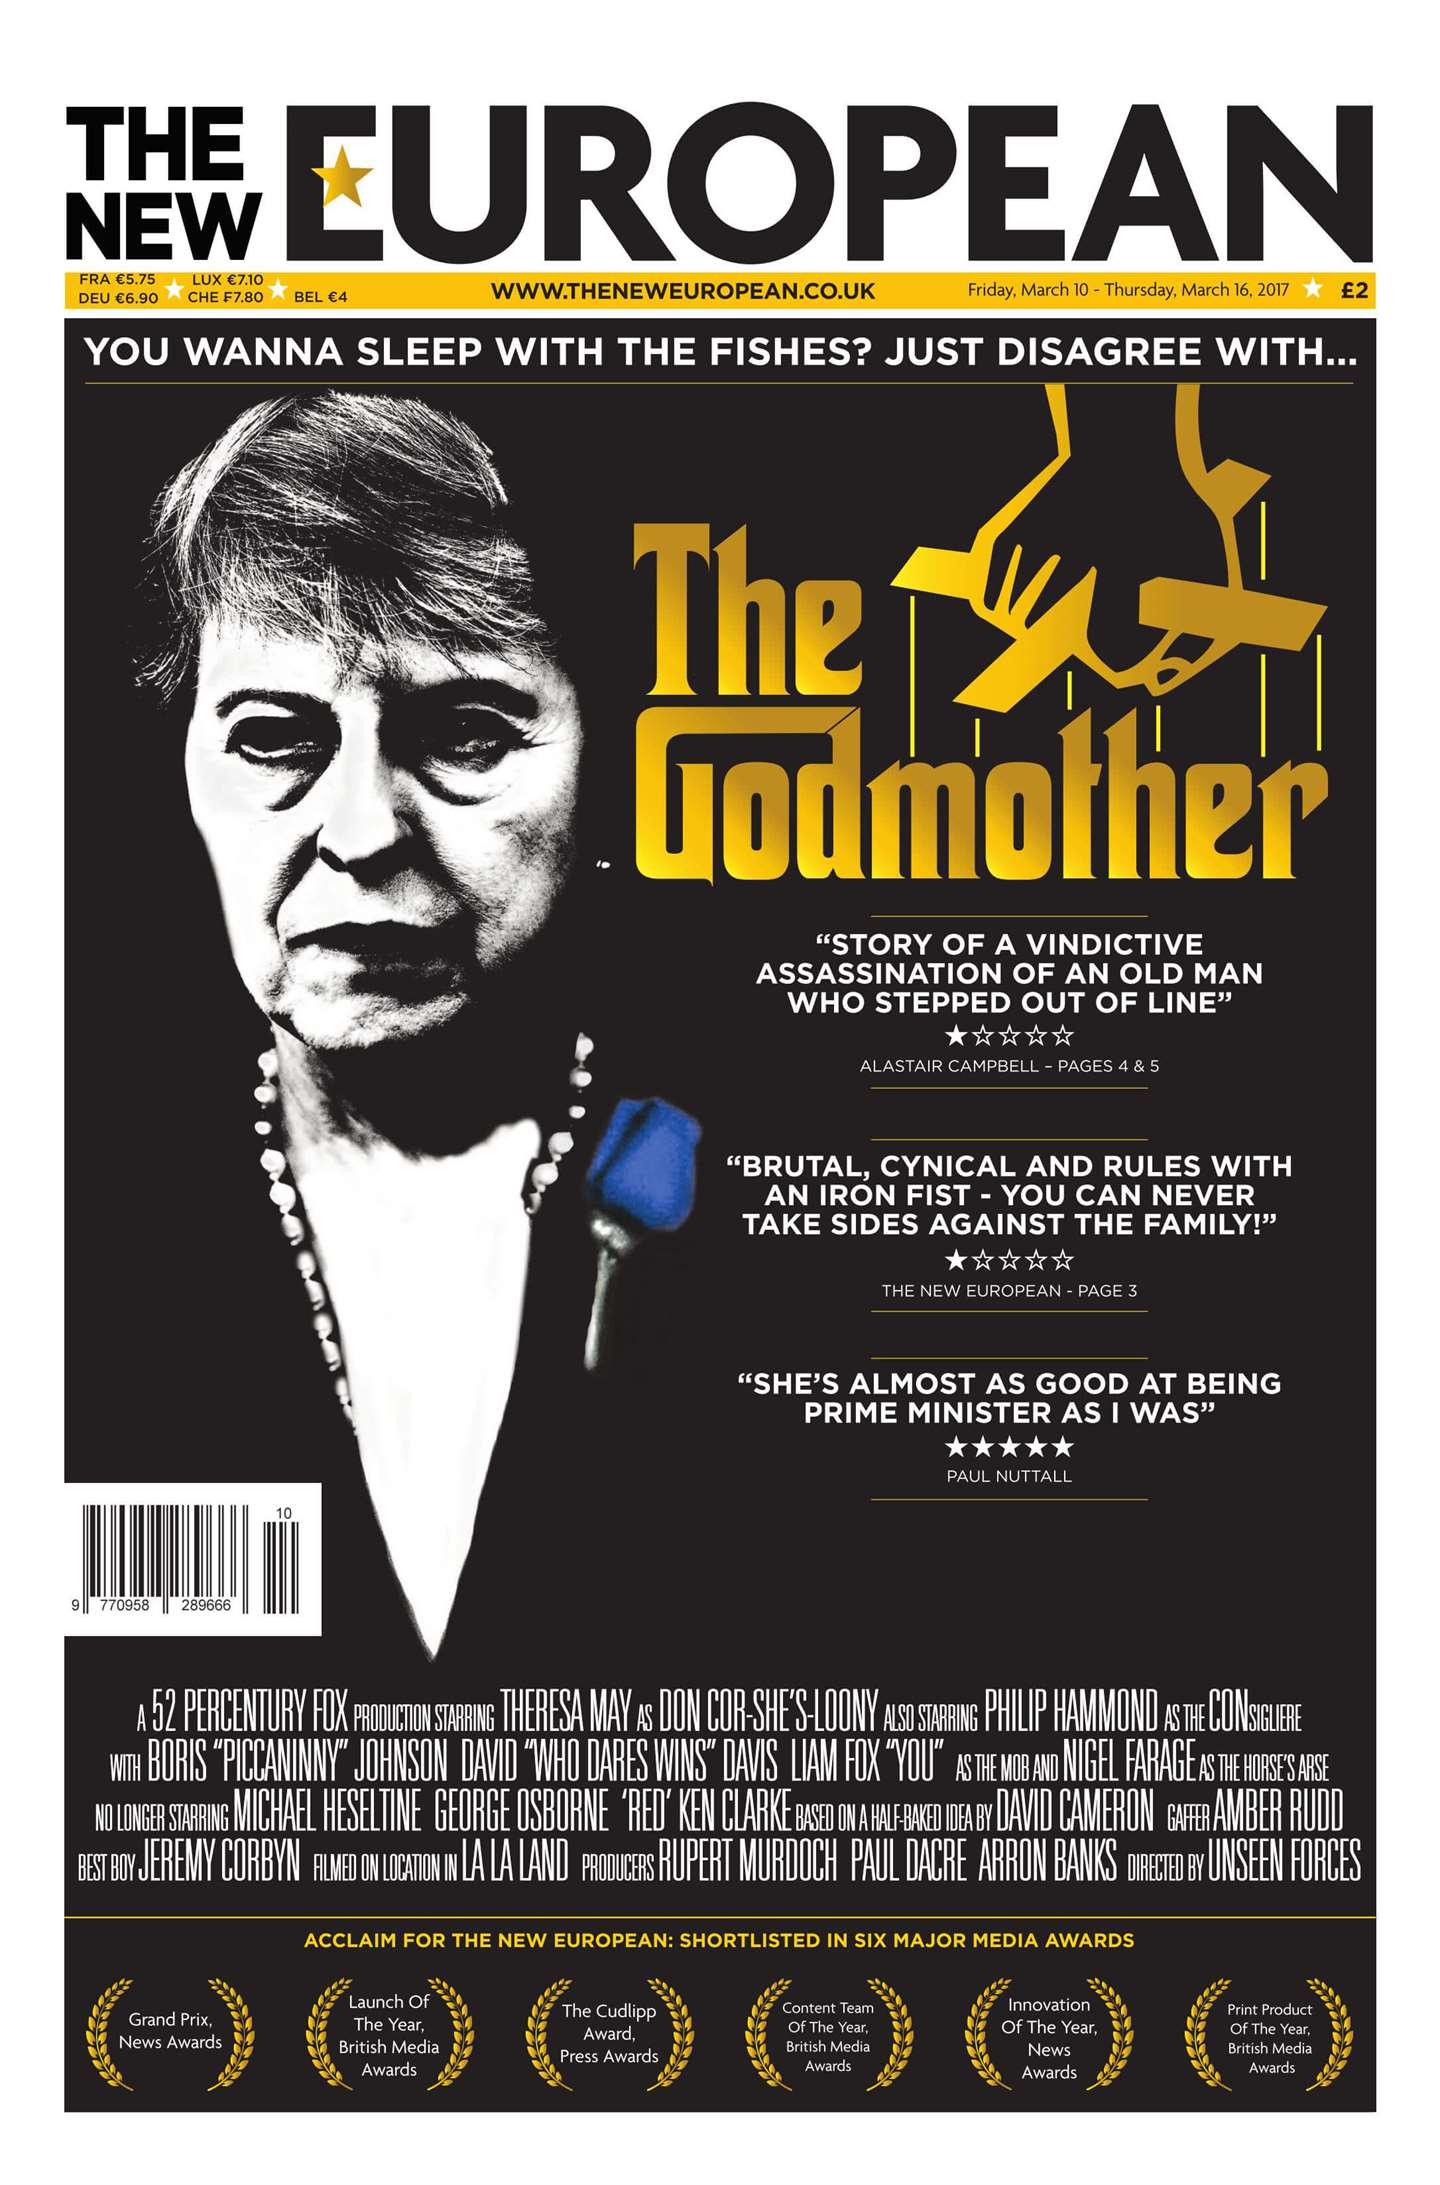 The New European The Godmother (Mar 10, 2017).jpg